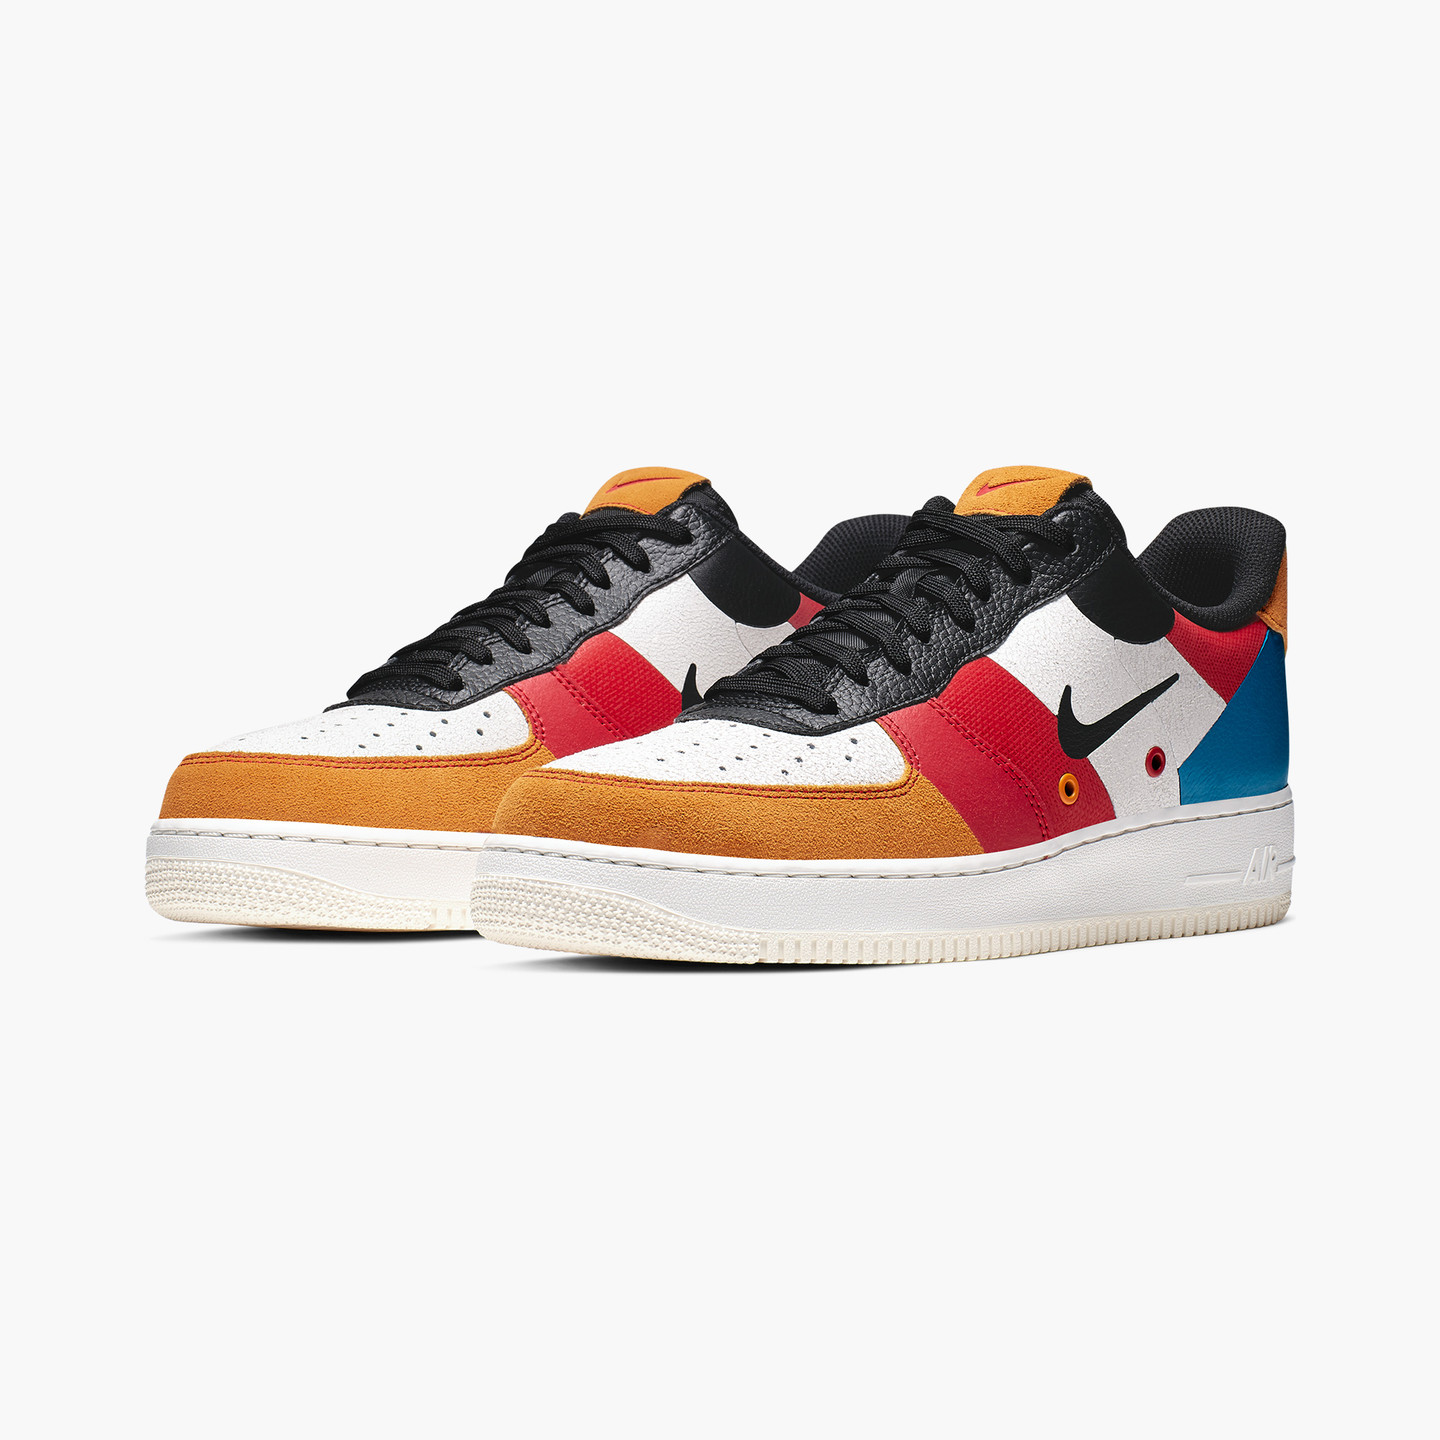 Nike Air Force 1 ´07 Low Premium Sail / Black / Imperial Blue / Amber Rise CI0065-101